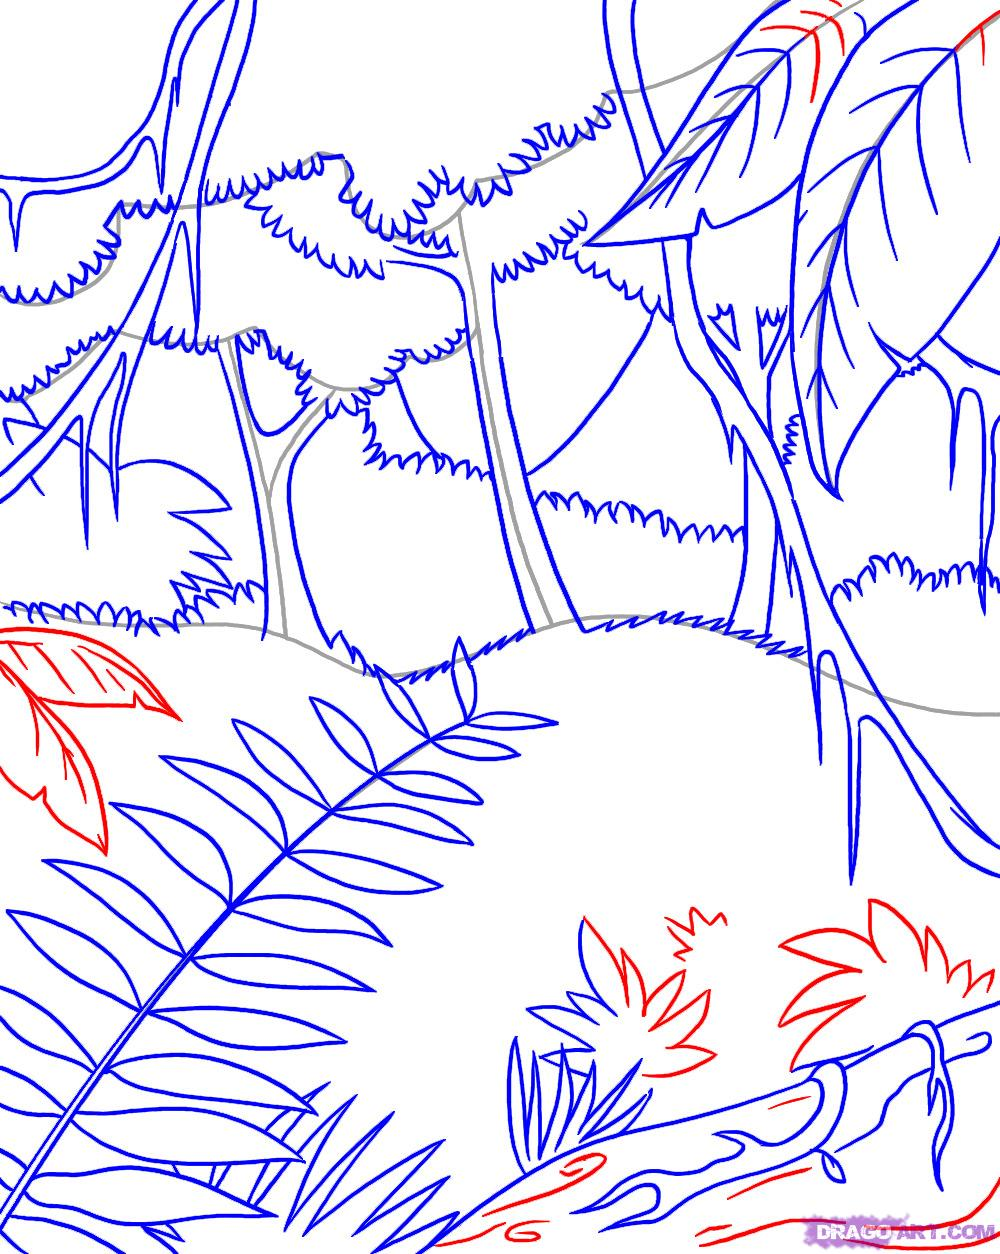 Drawn rainforest amazon forest A Landscapes step Step to